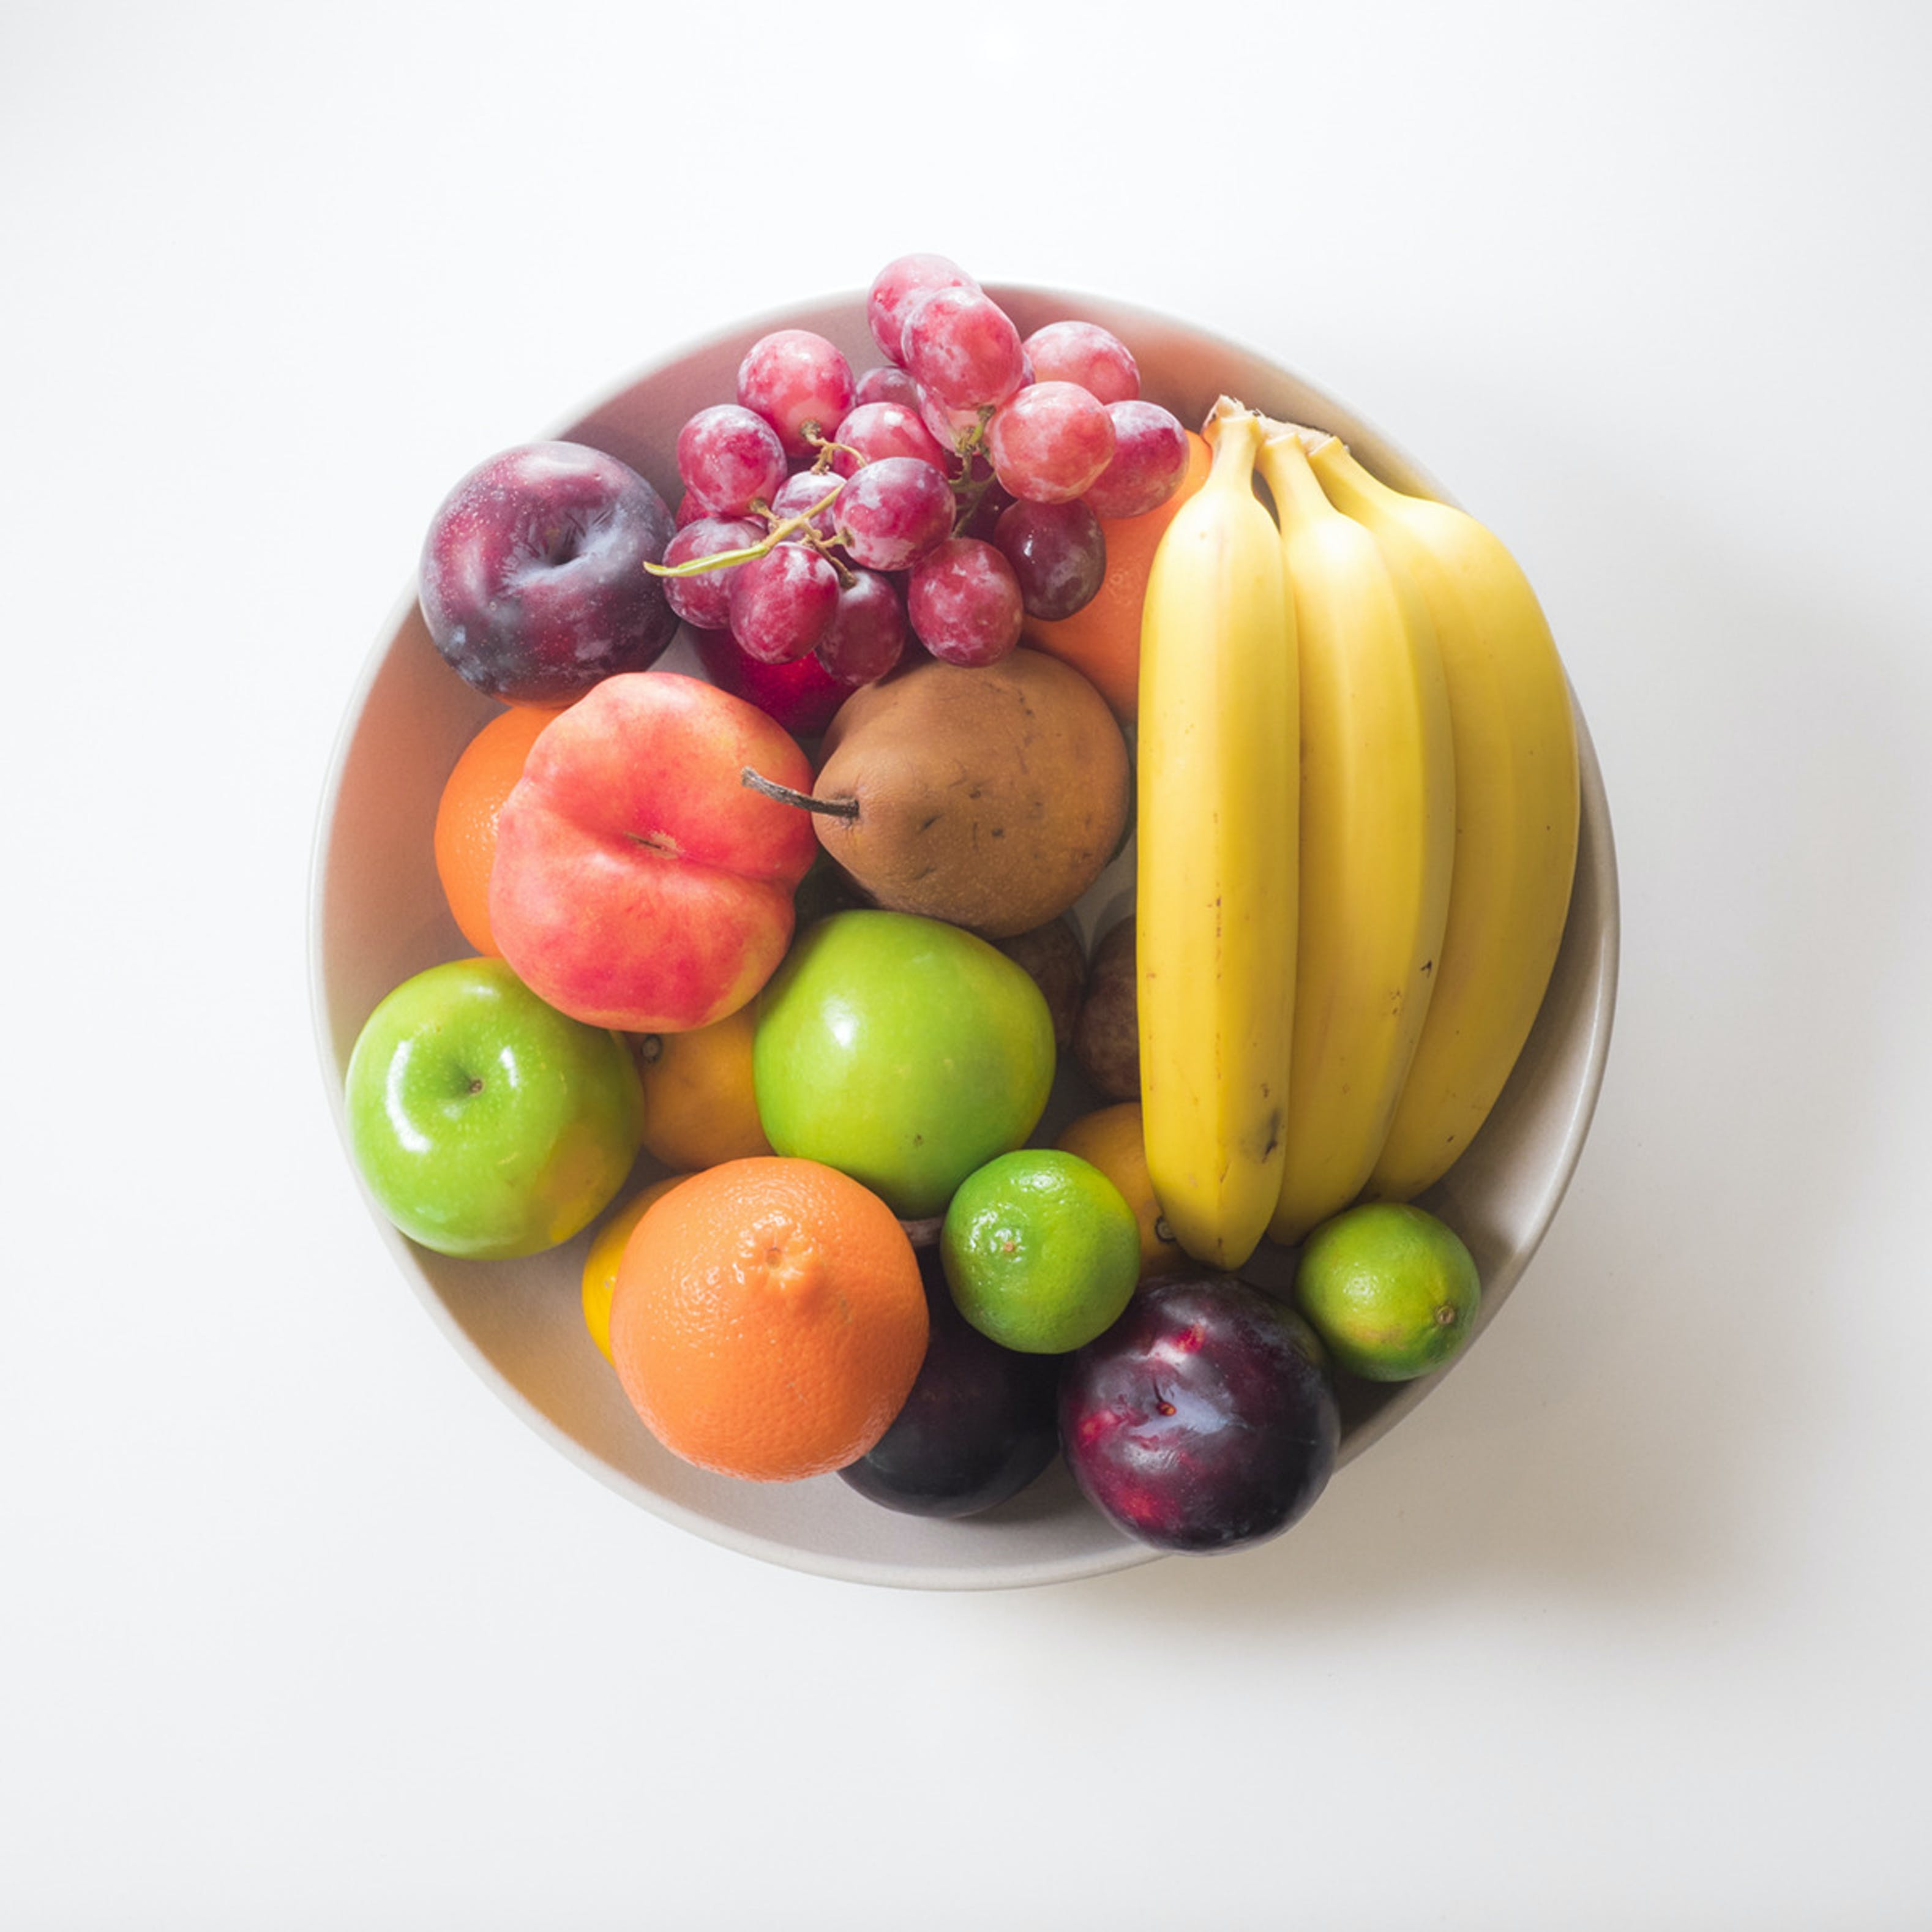 Stanford Introduction To Food And Health Coursera